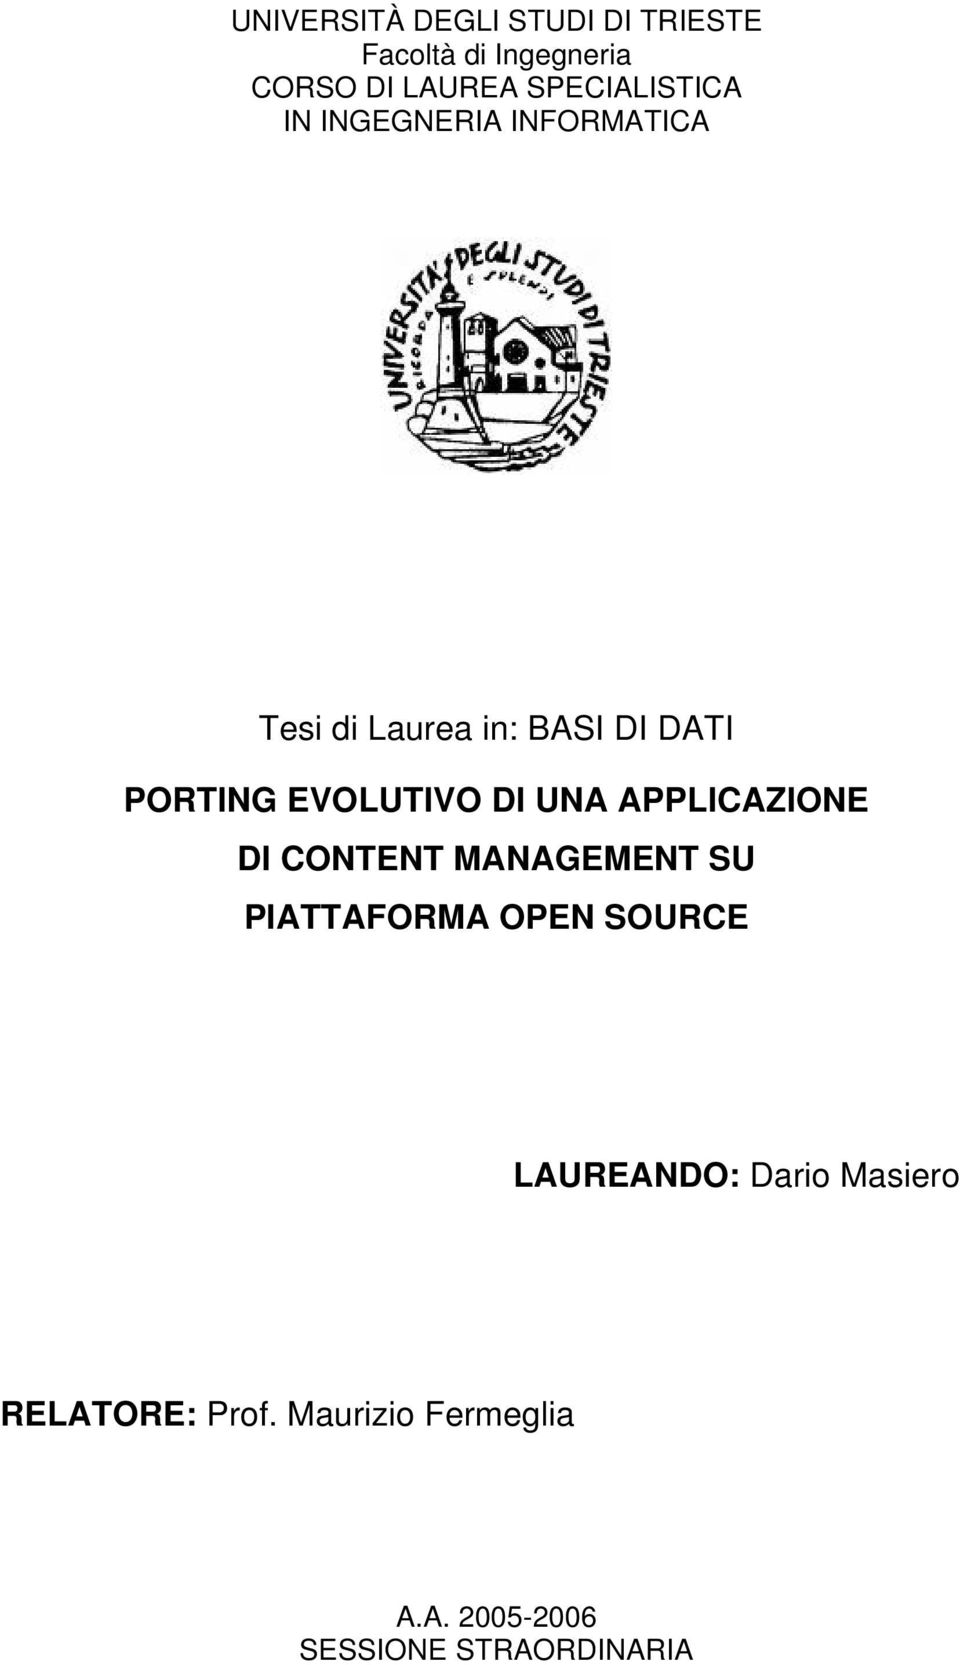 EVOLUTIVO DI UNA APPLICAZIONE DI CONTENT MANAGEMENT SU PIATTAFORMA OPEN SOURCE